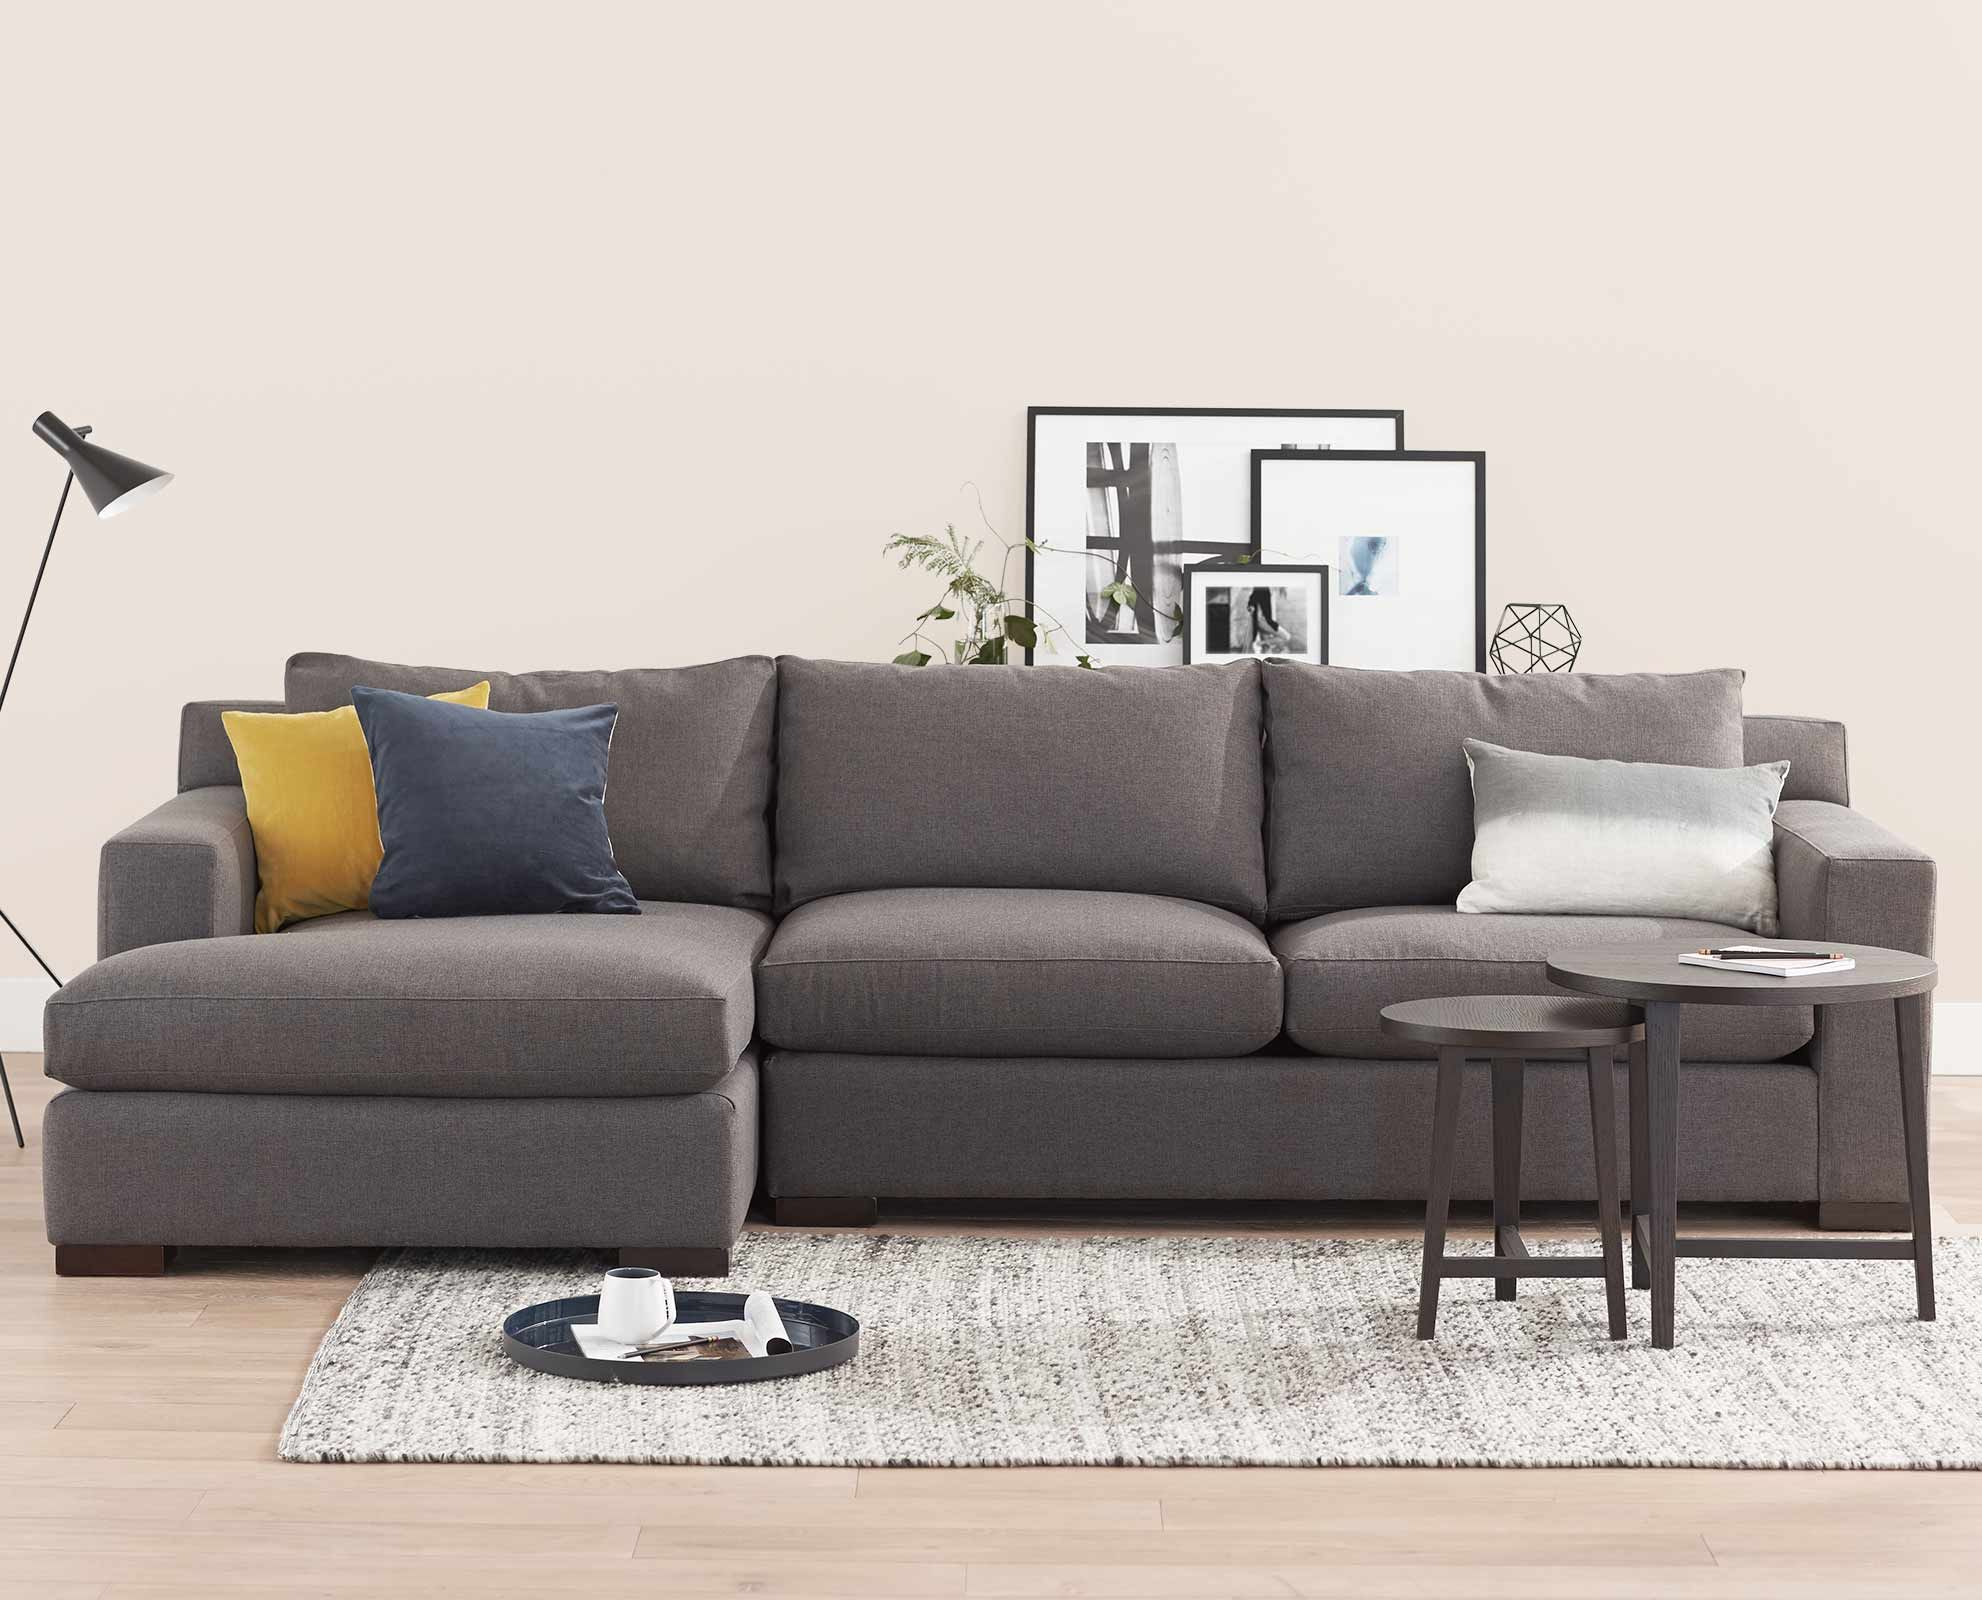 Beau ... The Aida Chaise Sectional Offers Clean Lines And Generous Seating With  Plush Cushions. Bench Made In The USA With An Eco Friendly, Kiln Dried  Hardwood ...